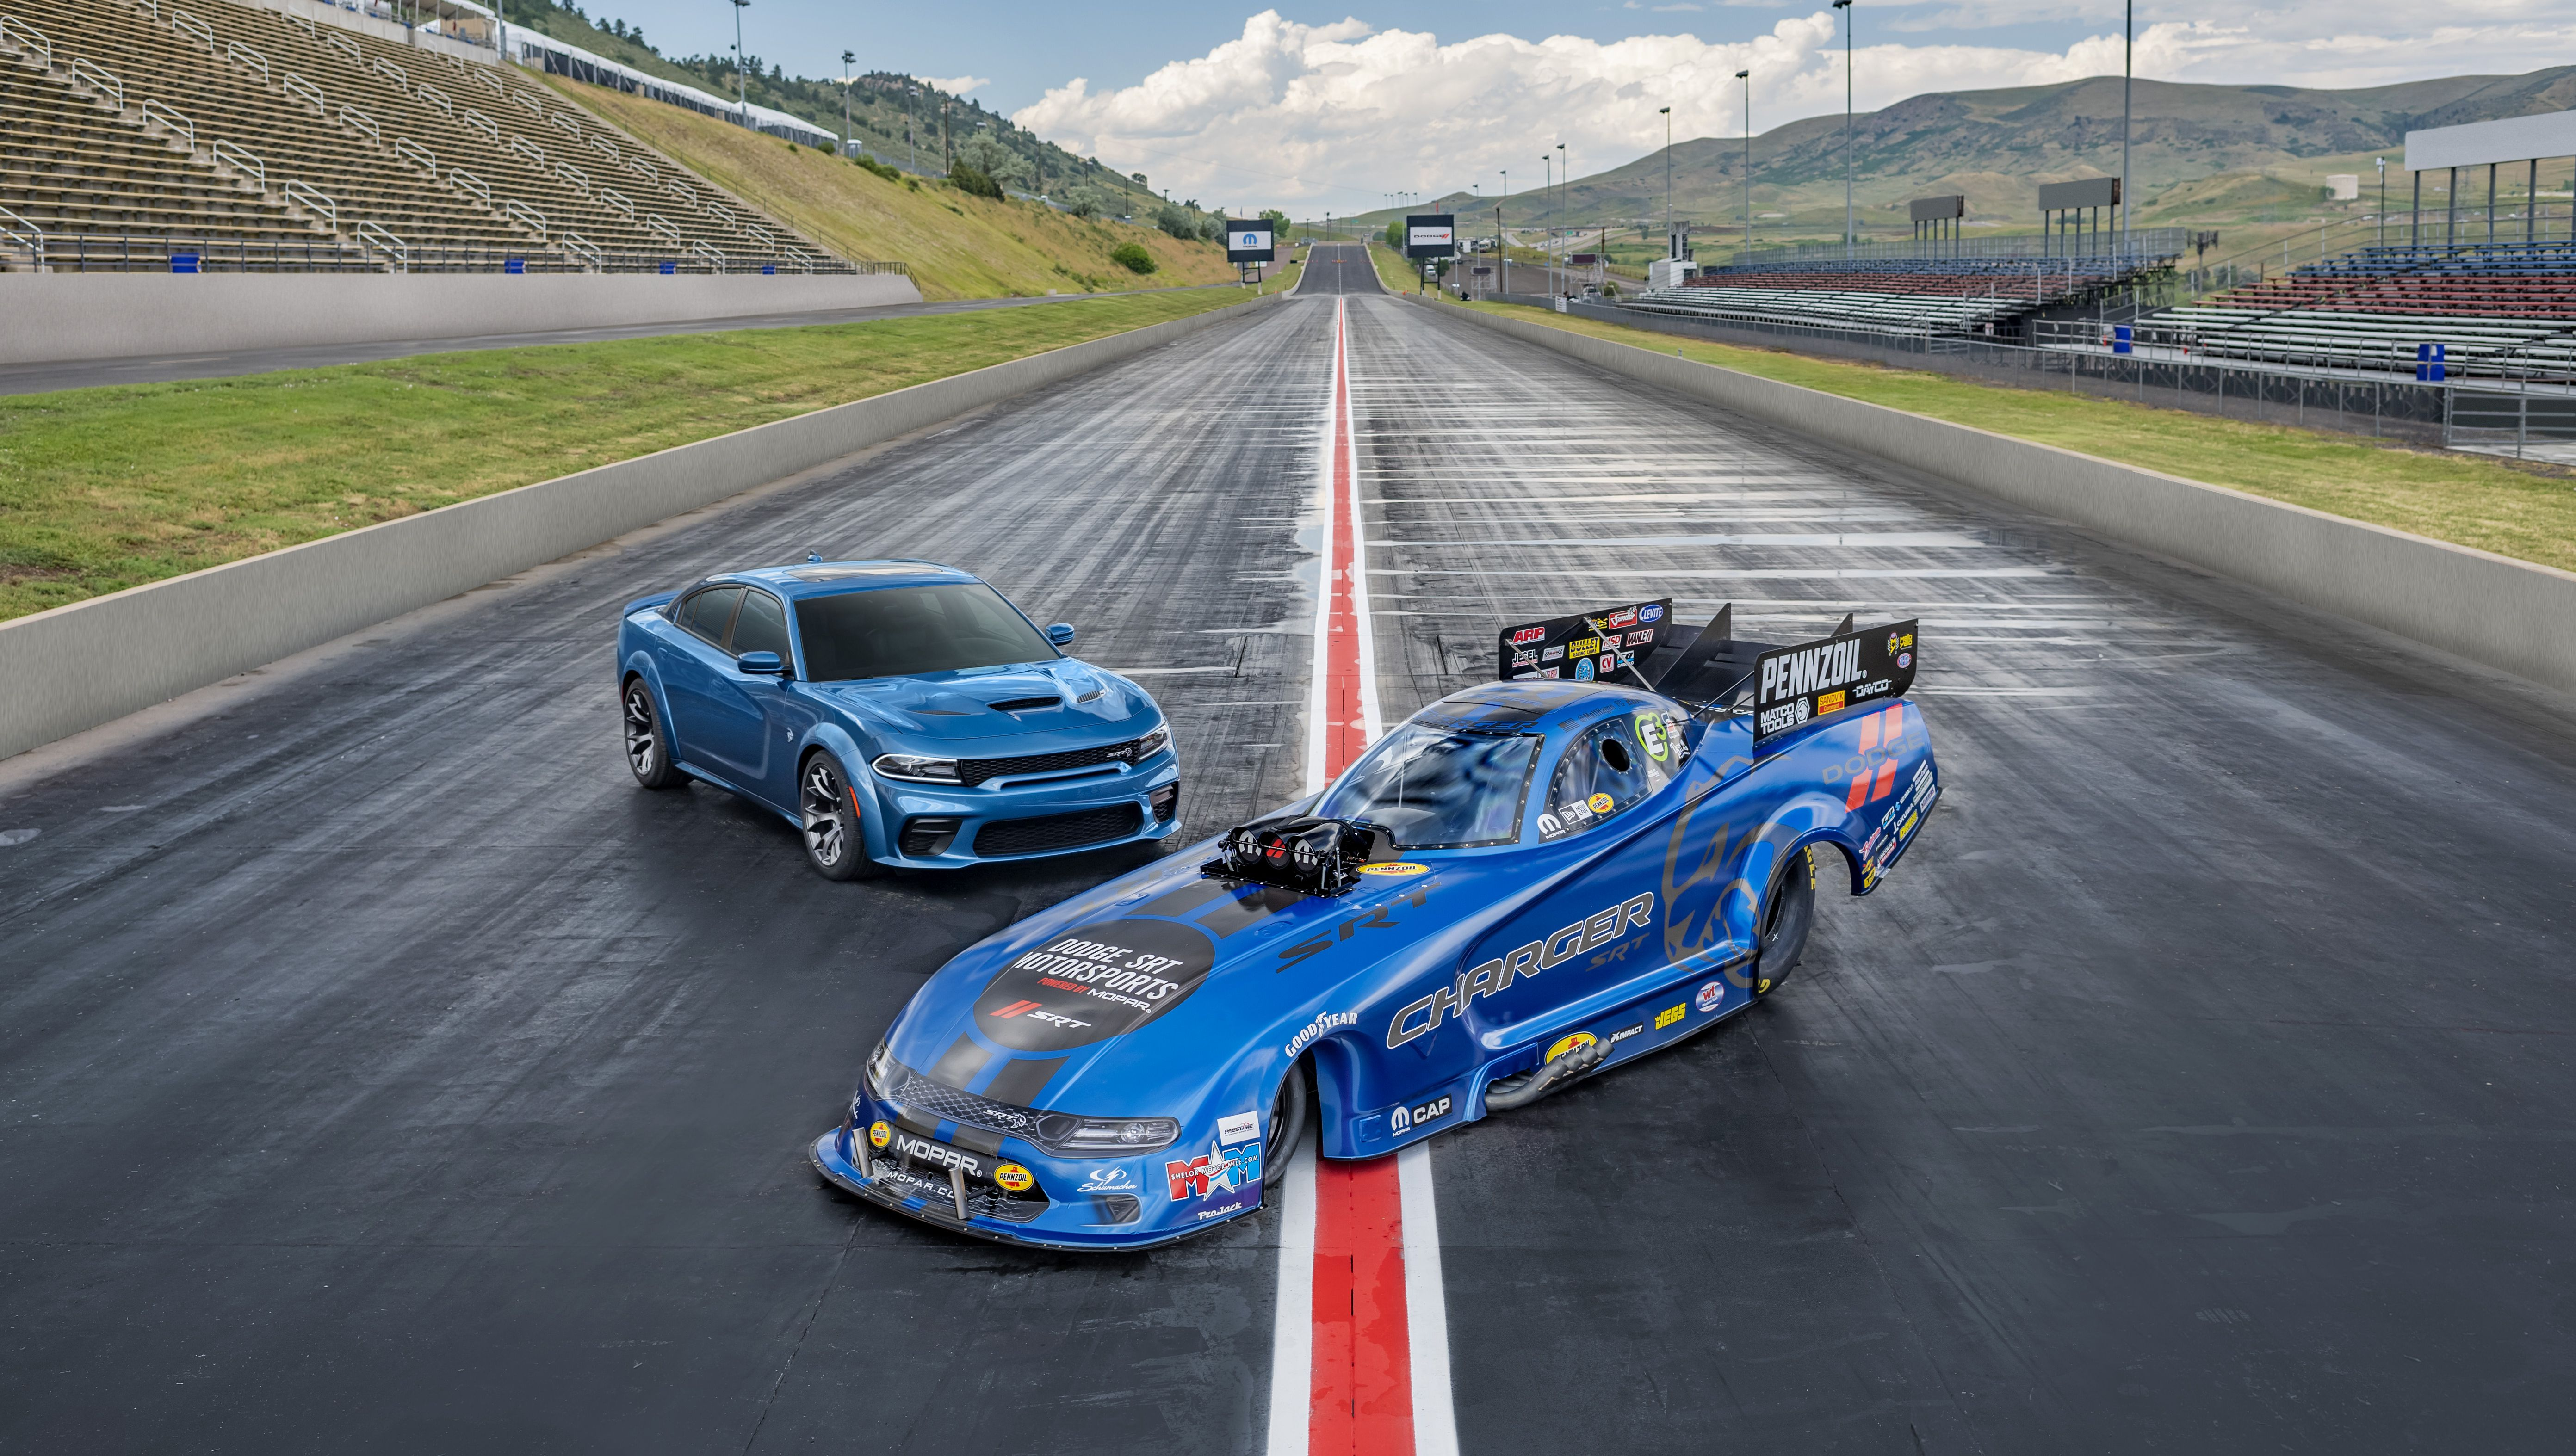 Matt Hagan, twice champion of the NHRA racing series, has shown us his all-new dragster stylized to deceive some people into thinking it is a heavily modded Charger SRT Hellcat Widebody.